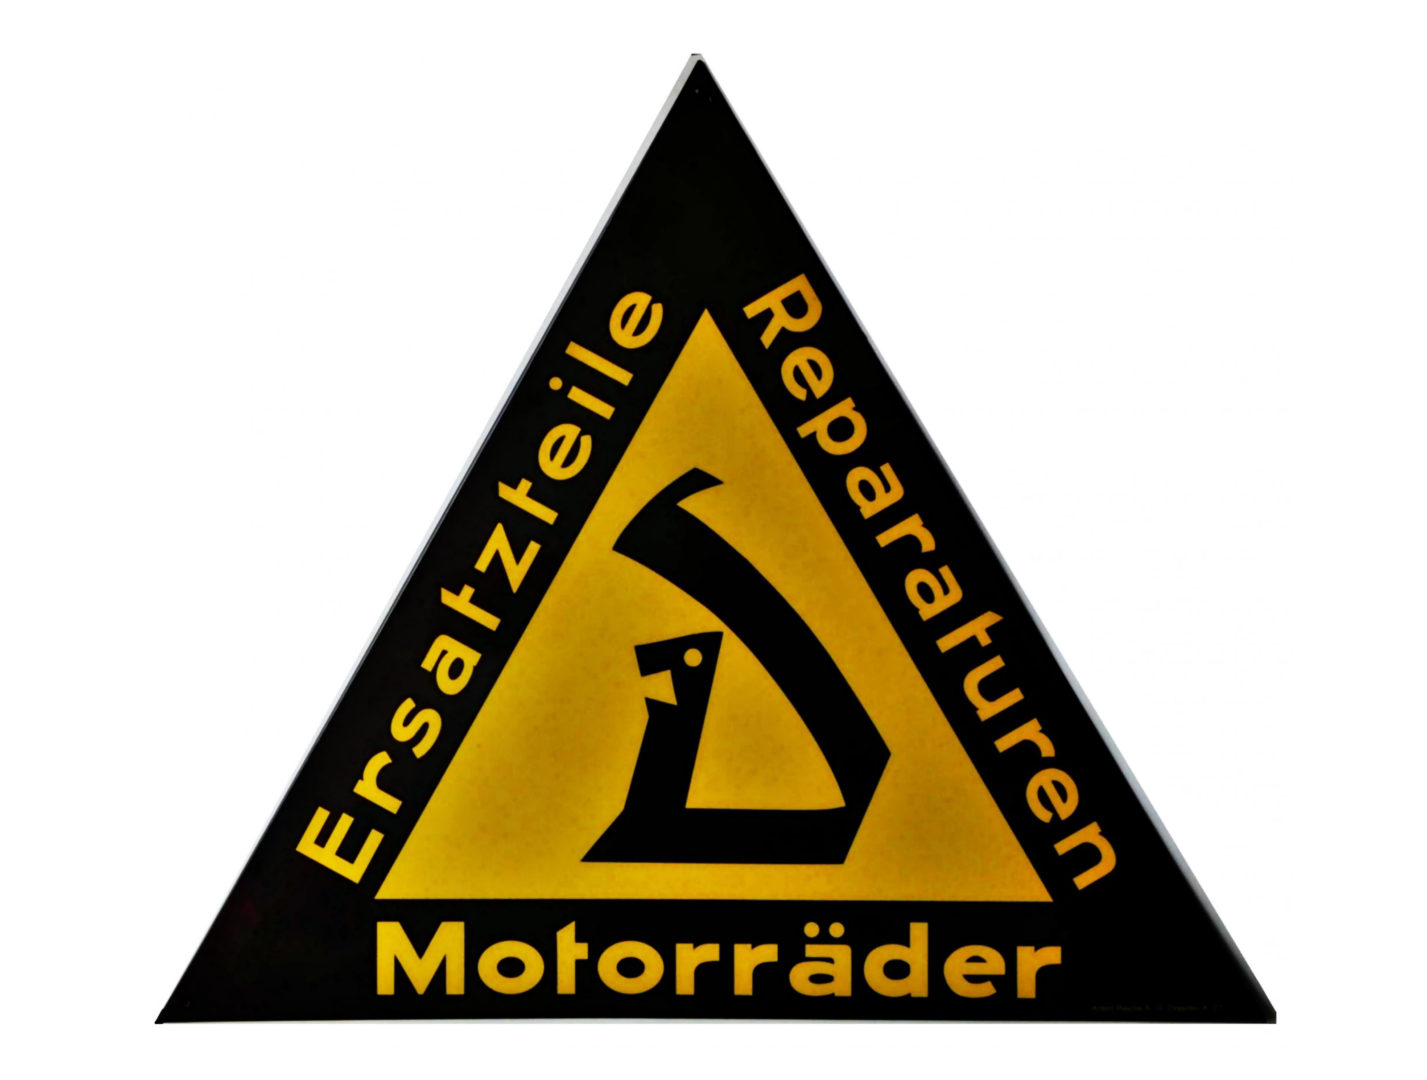 D-Rad motorcycle logo